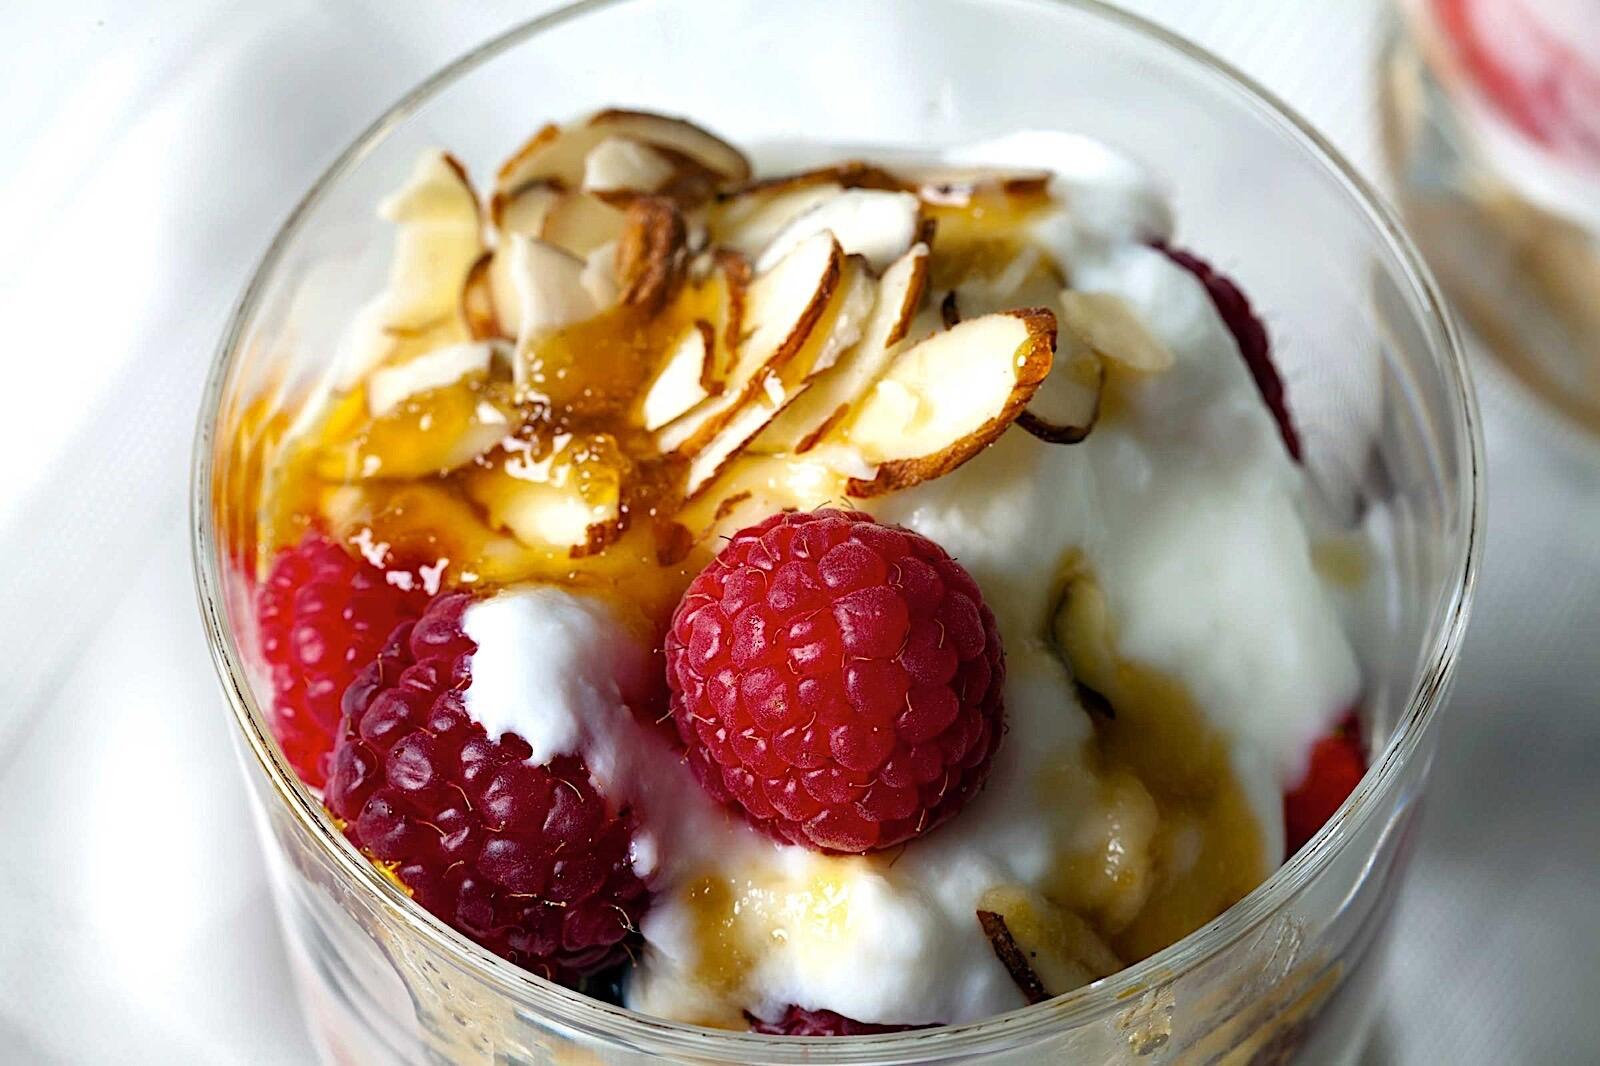 Yogurt with fruit and almonds